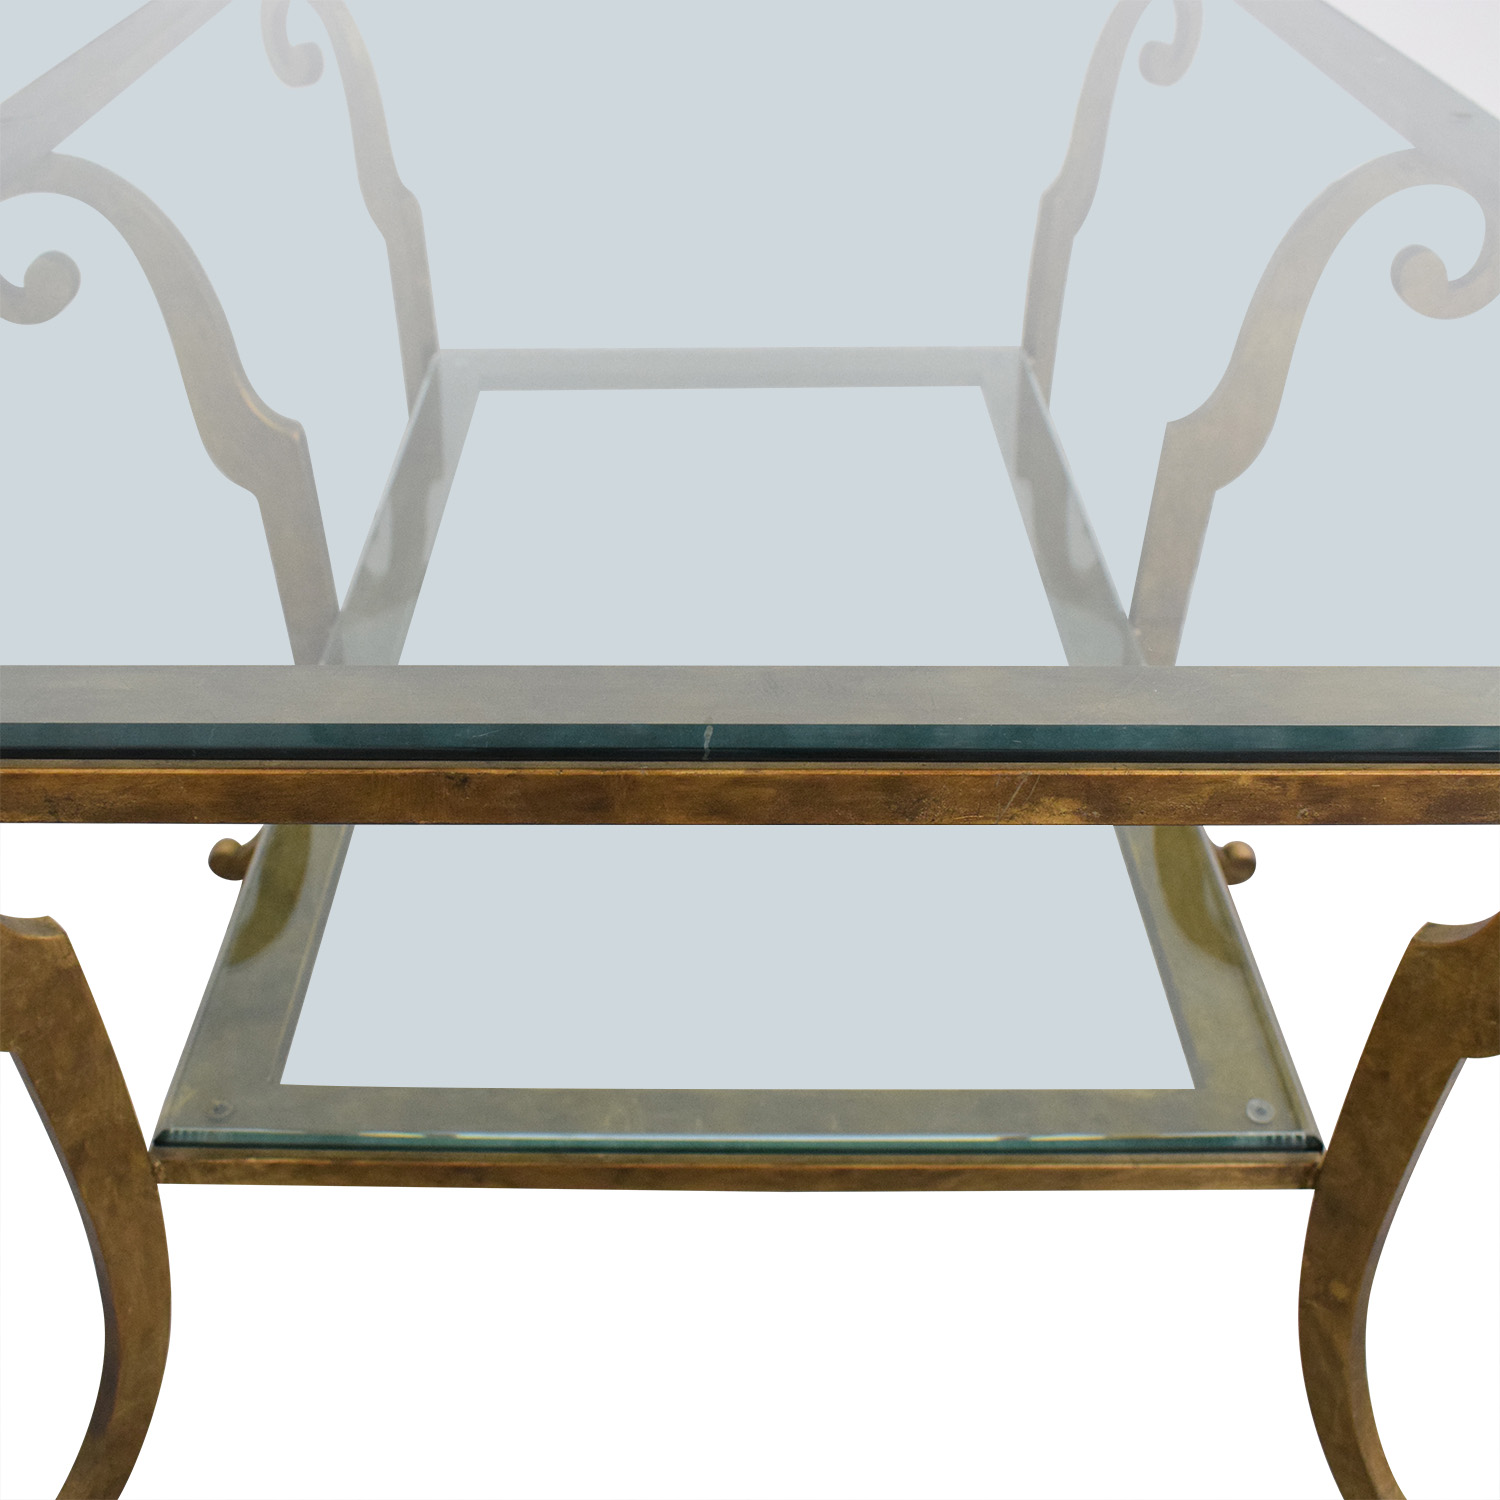 Ethan Allen Ethan Allen Two Tiered Coffee Table for sale